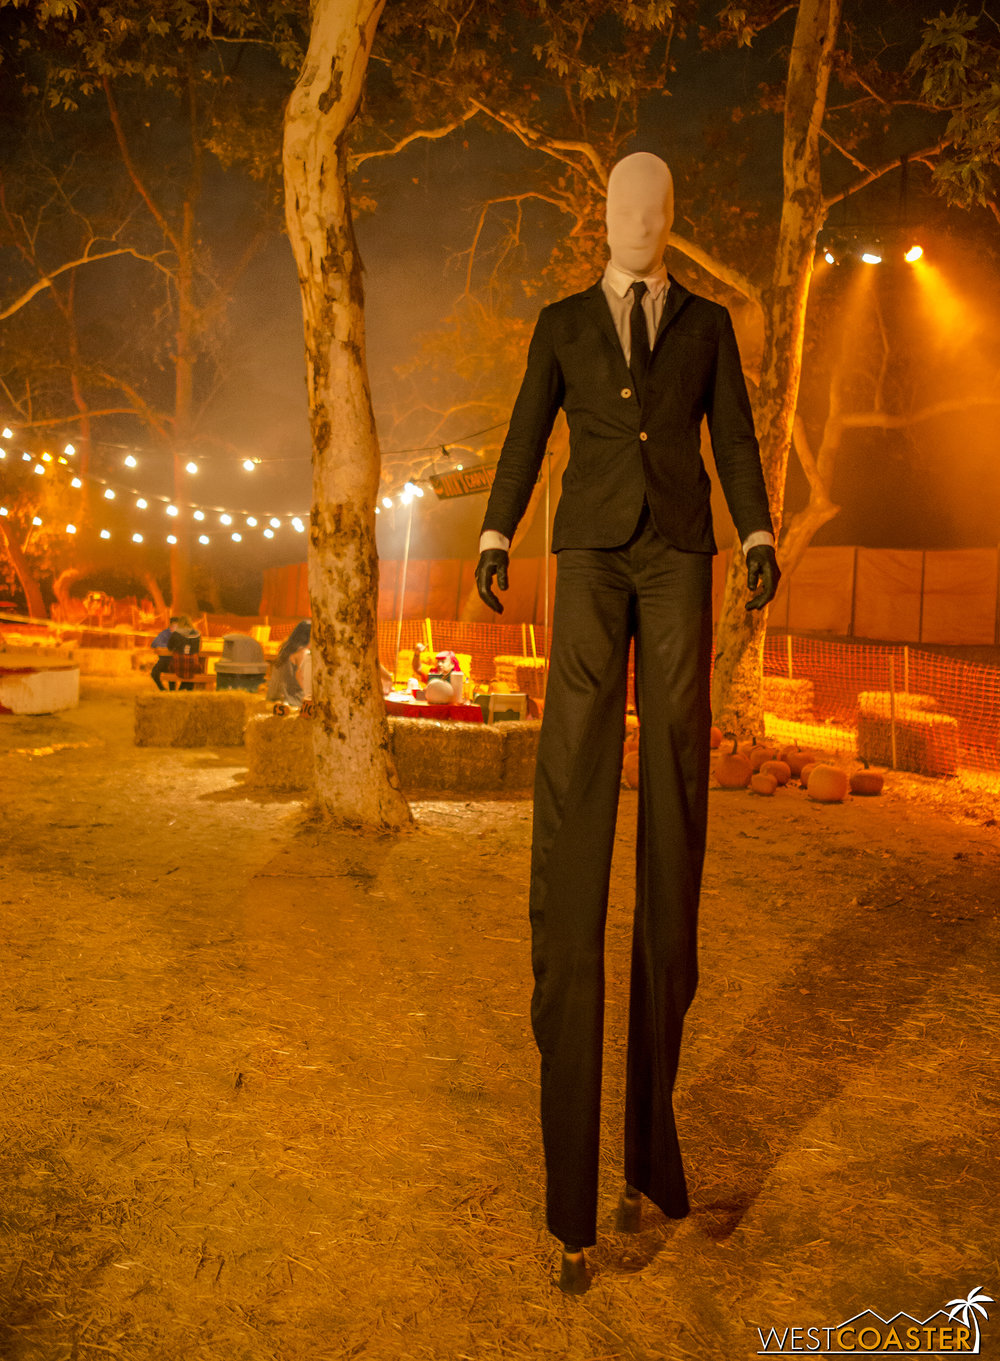 Oh hey, it's Slender Man!